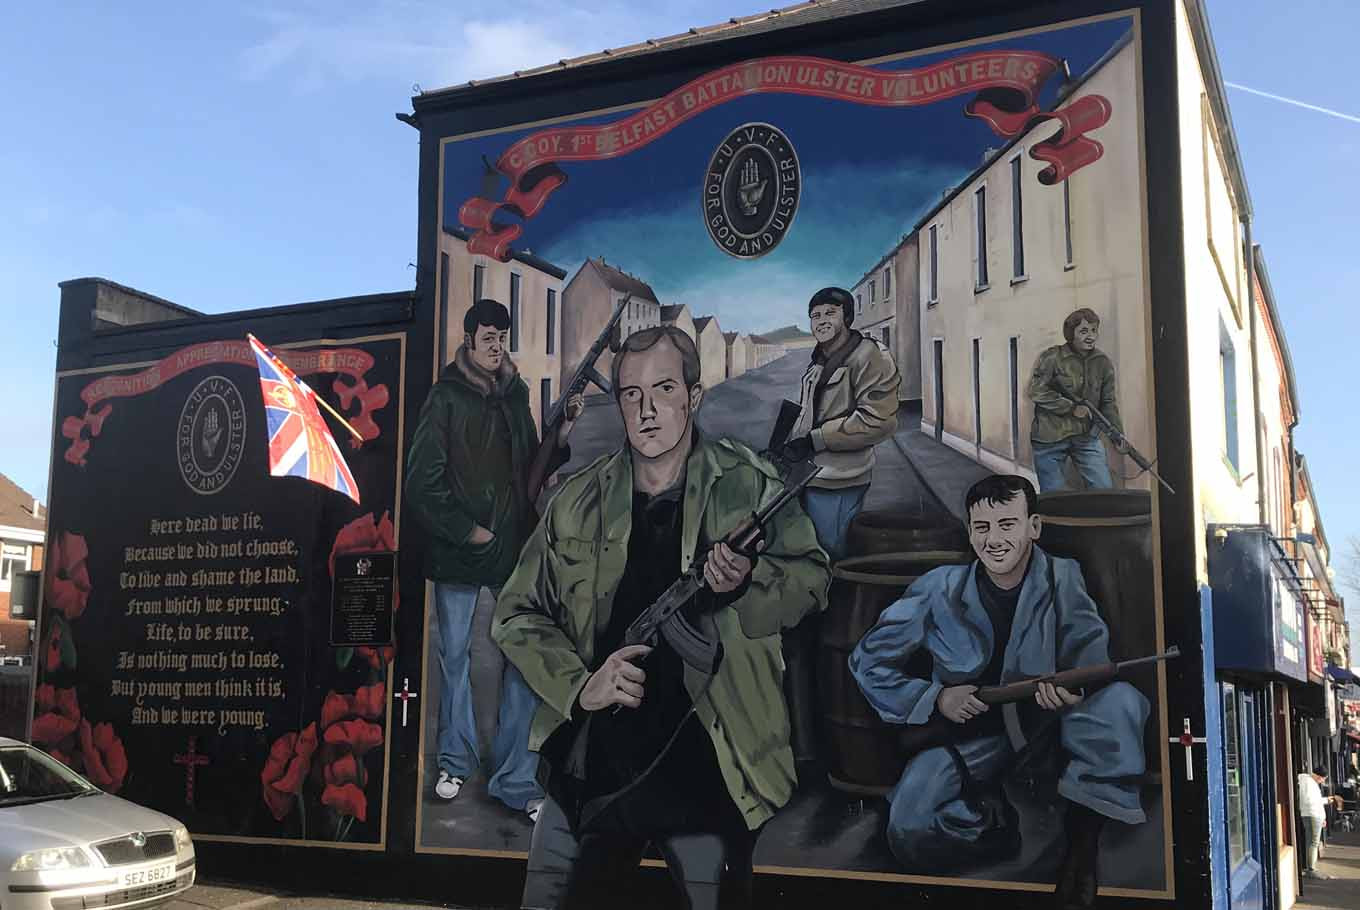 A mural of Belfast's Ulster Volunteers (UVF)